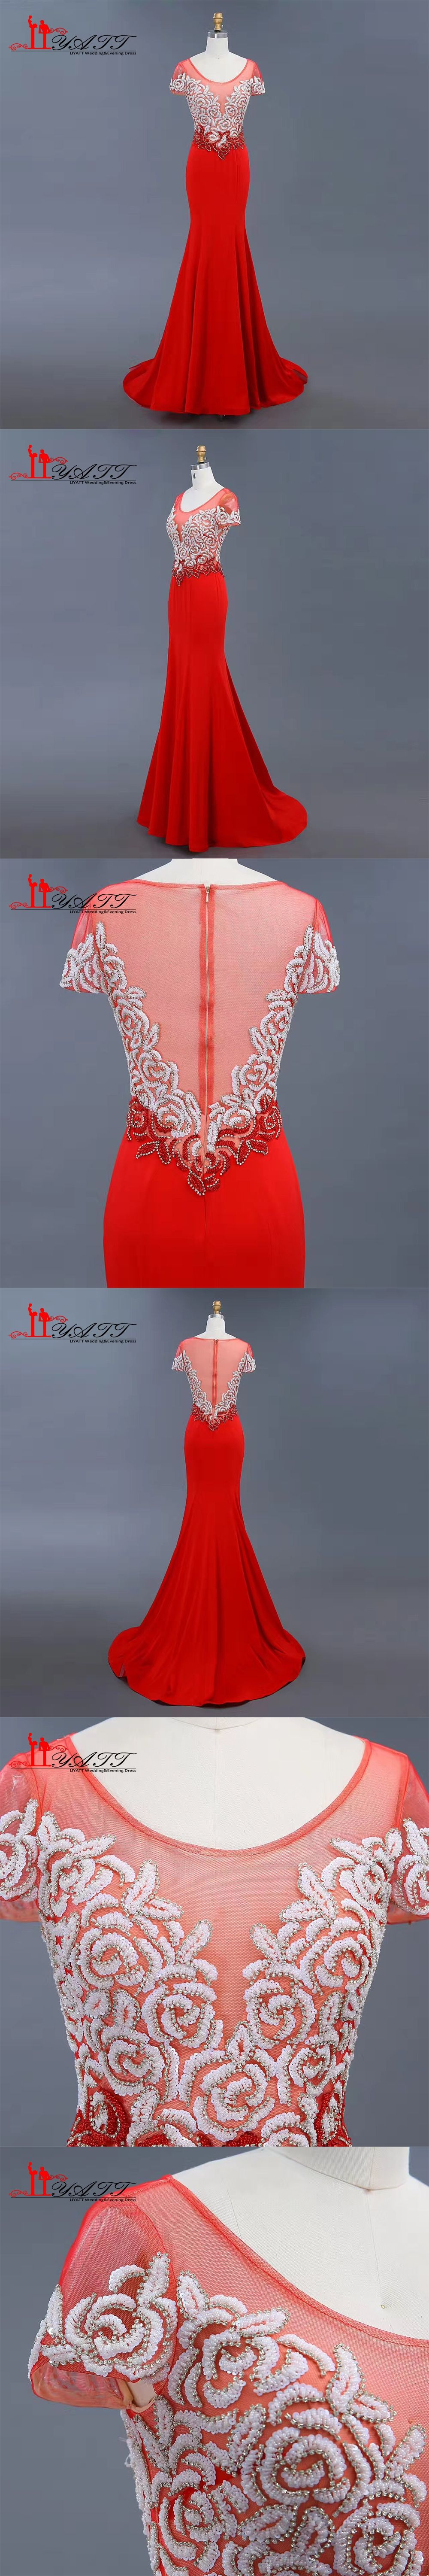 new arrival red sexy mermaid rose flower elegant evening prom